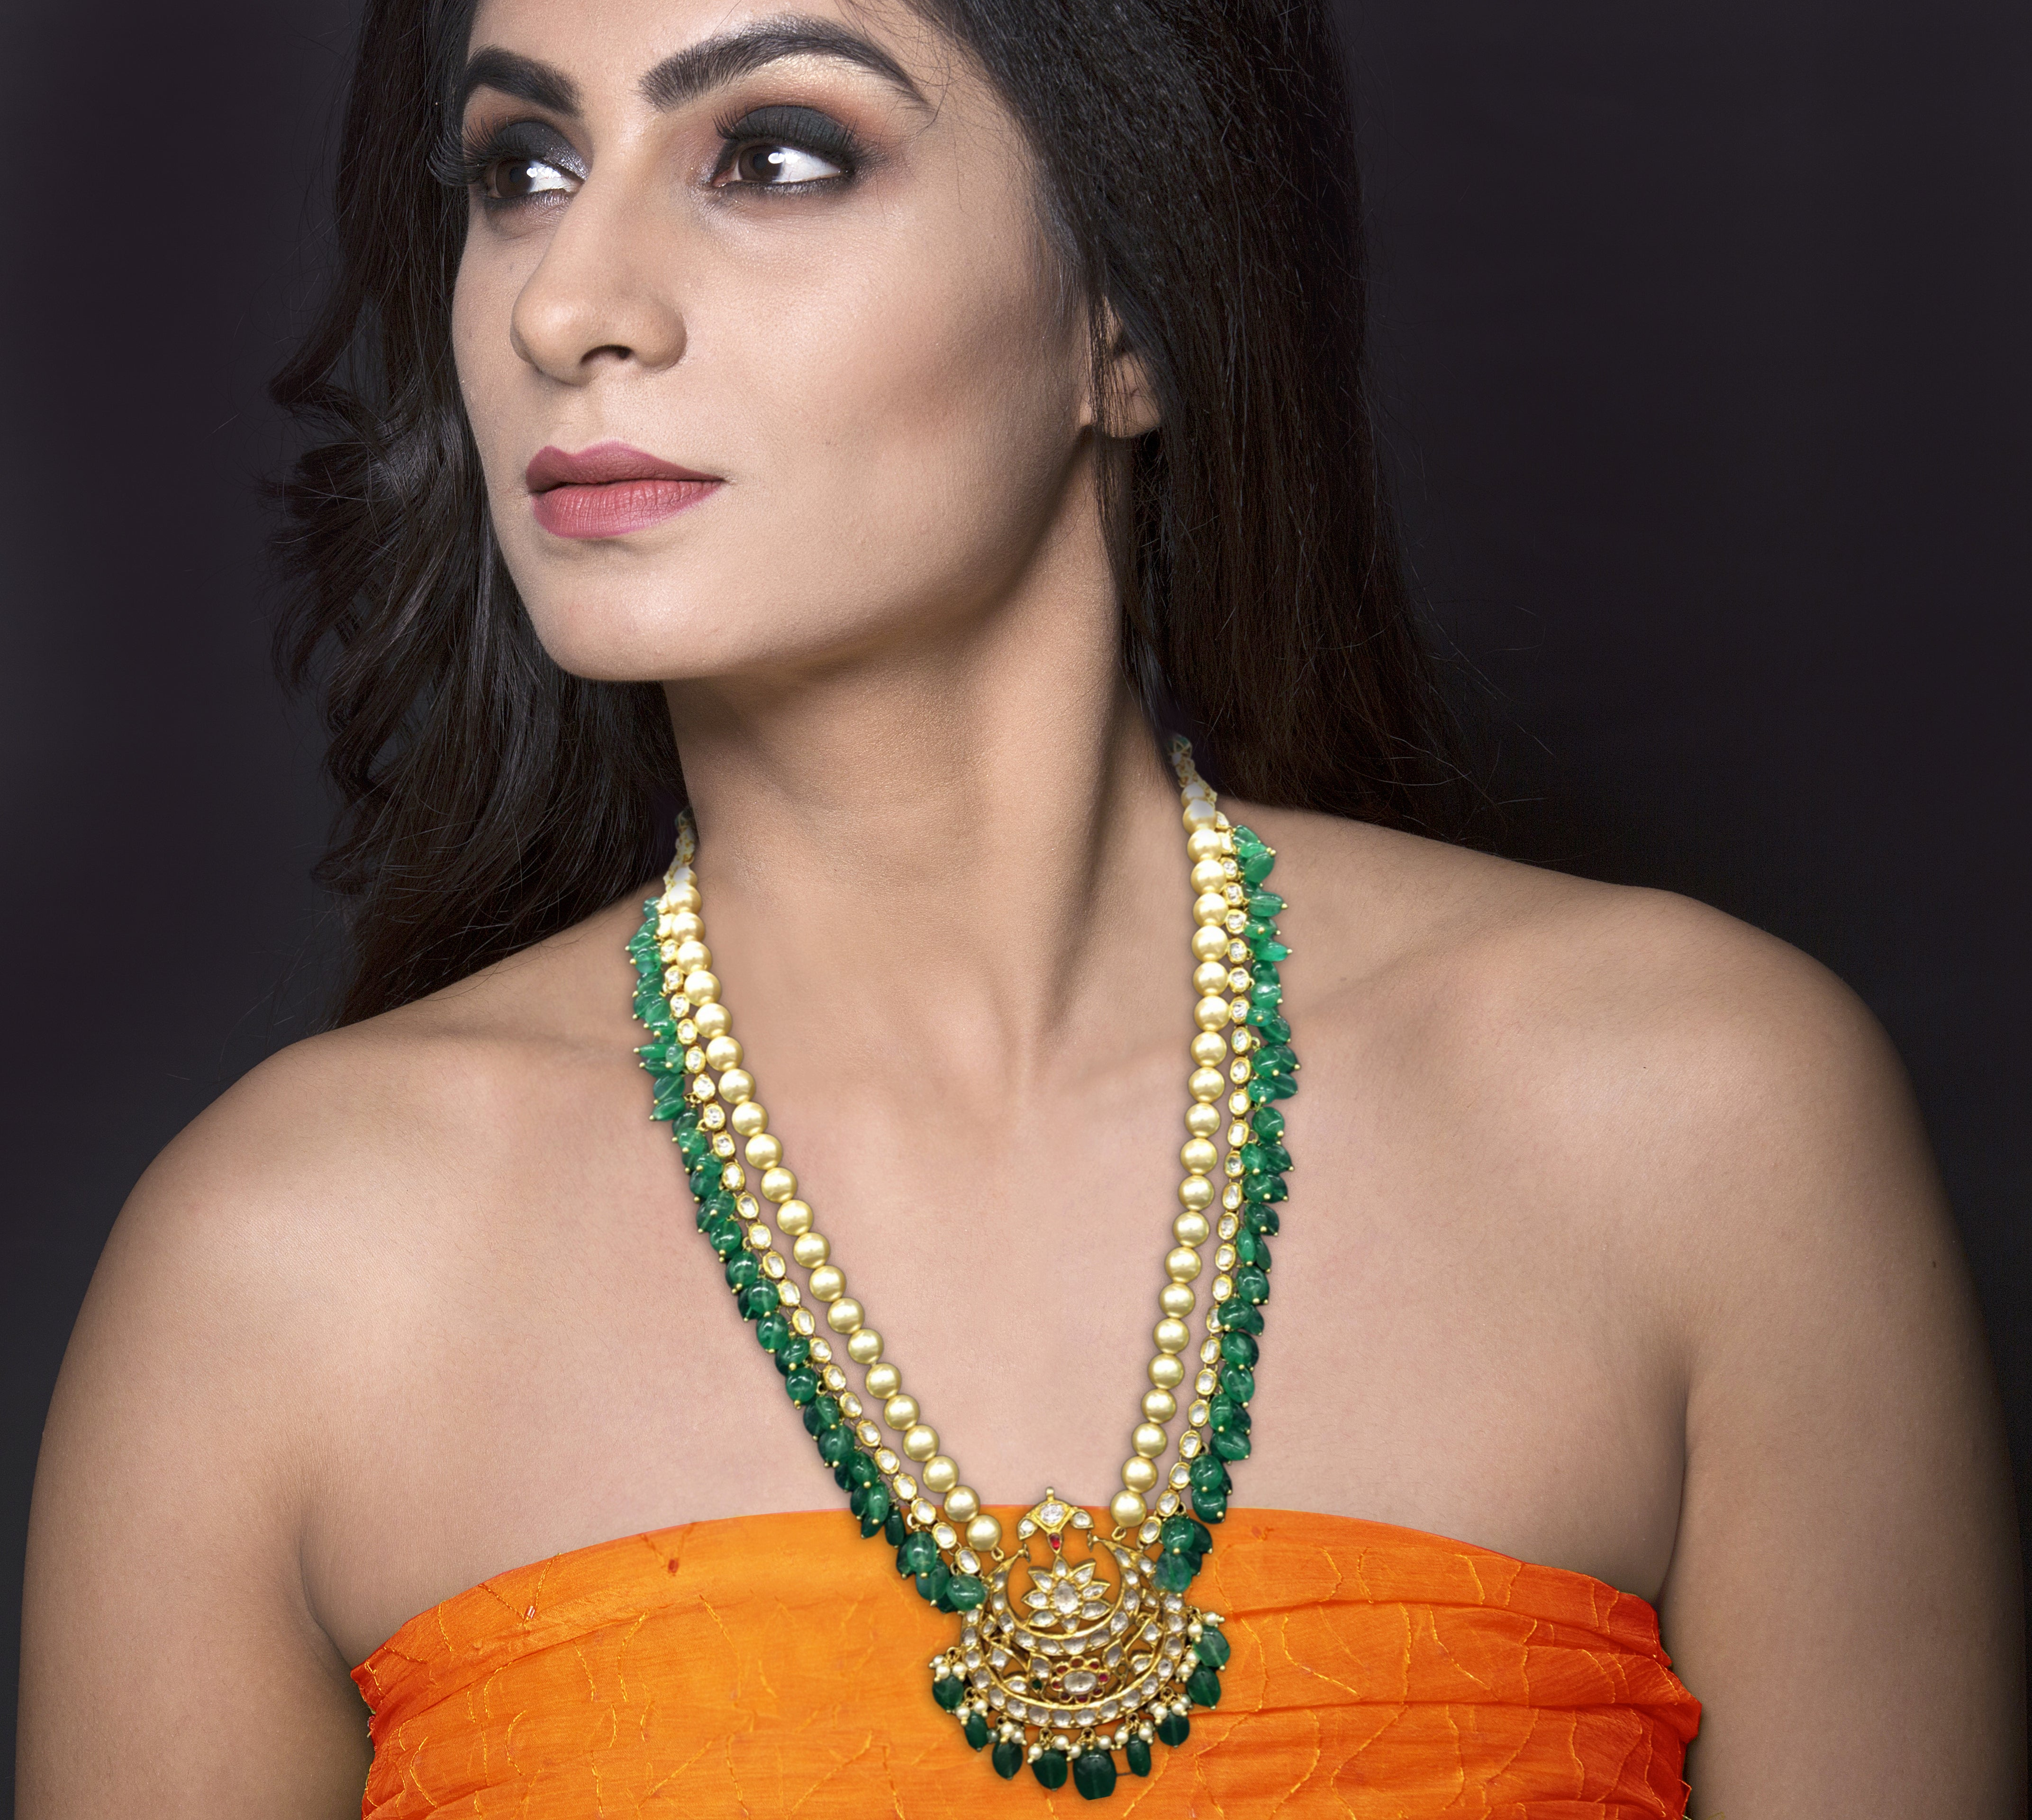 18k Gold and Diamond Polki chand-shaped Pendant strung to uncut ovals enhanced with Green Beryls - G. K. Ratnam